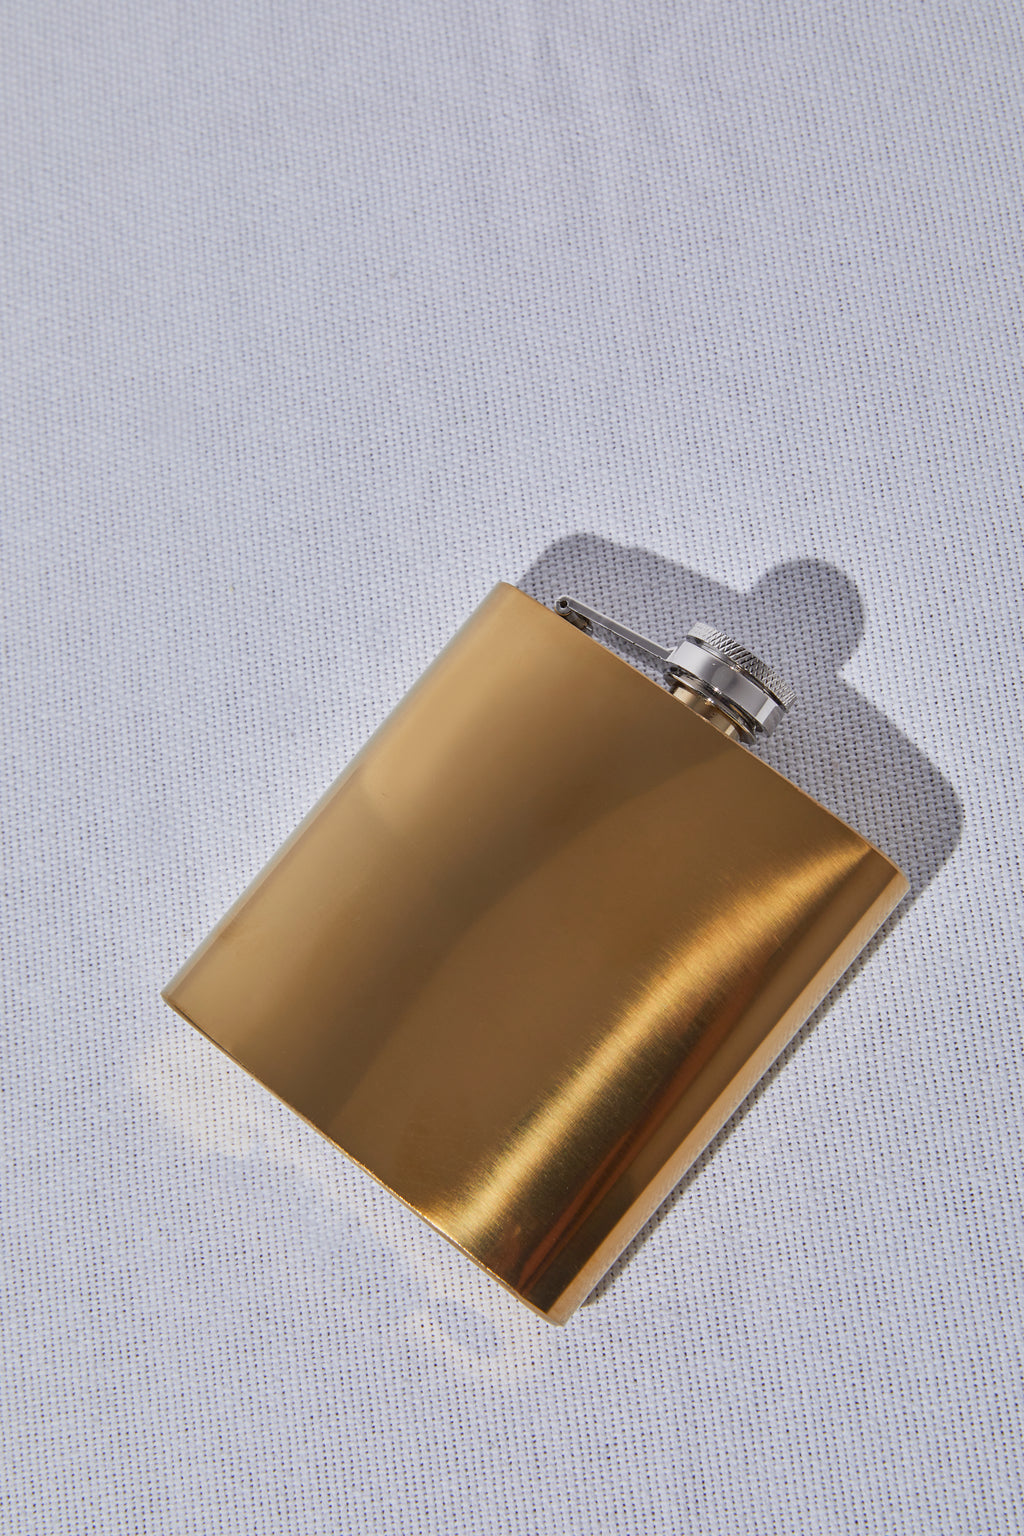 Polished Brass Flask - P I C N I C